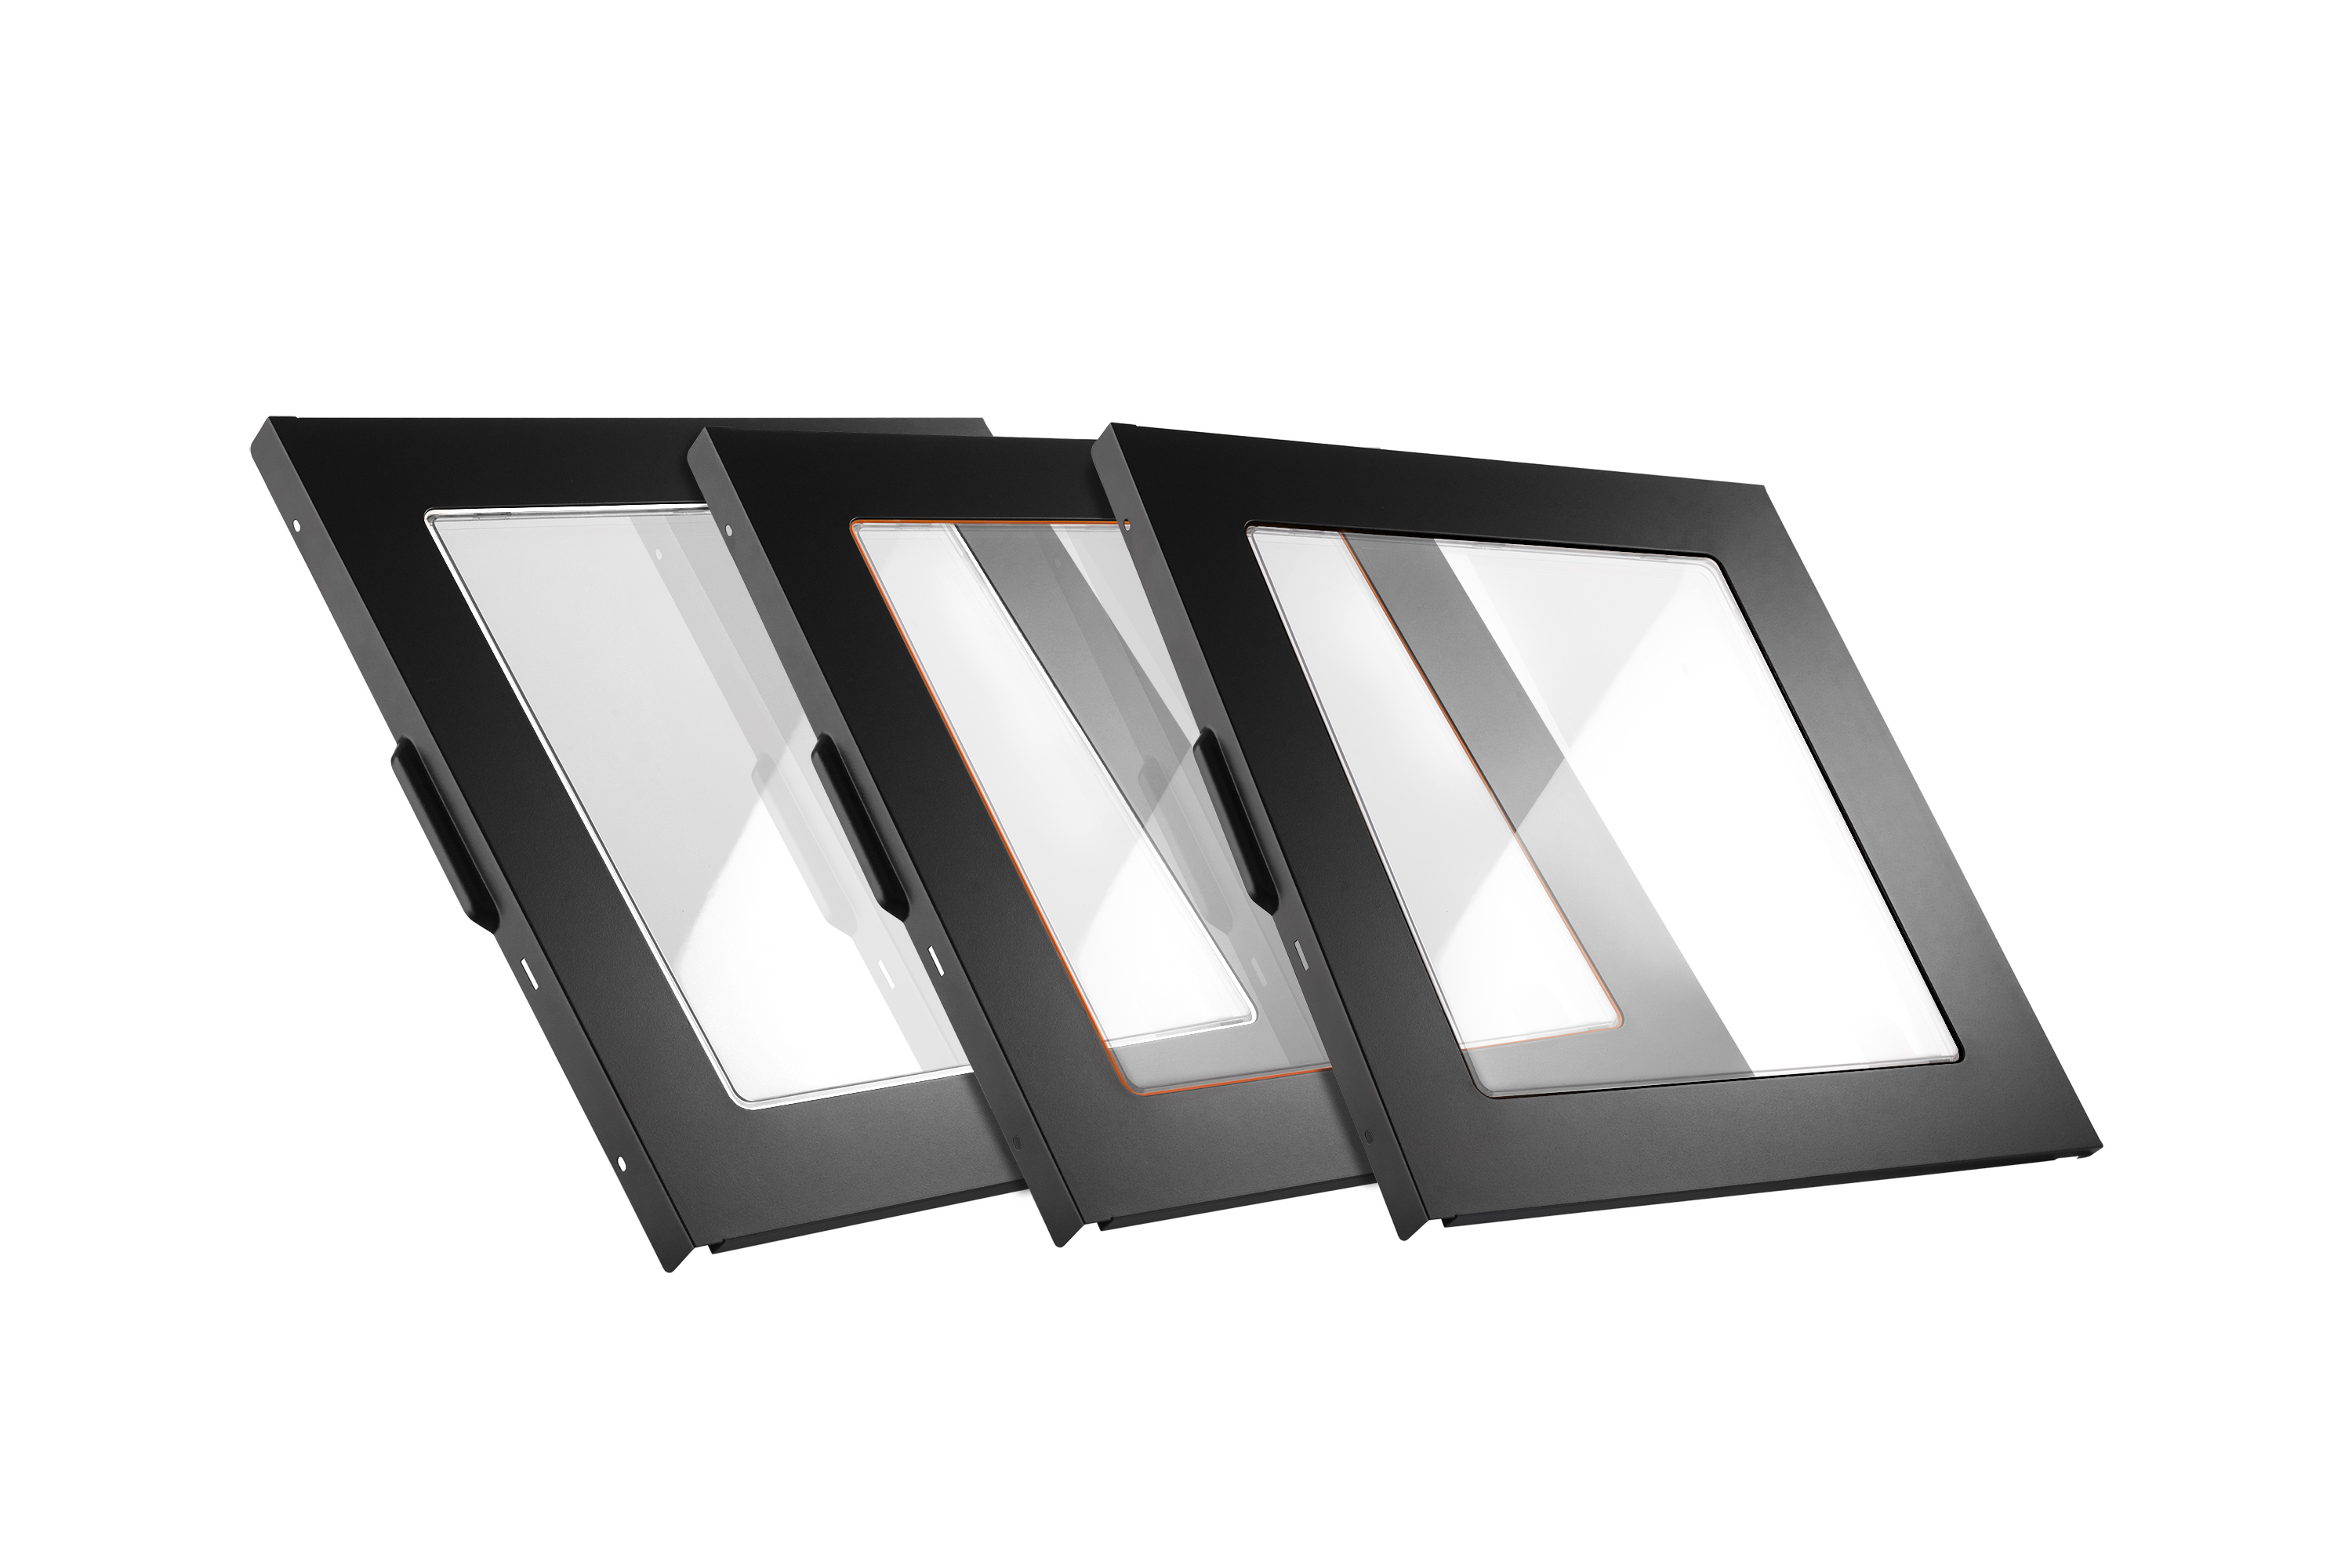 be quiet! Silent Base 600/800 Window Side Panel. 3 colour rubber included (orange, black and silver) //BGA01